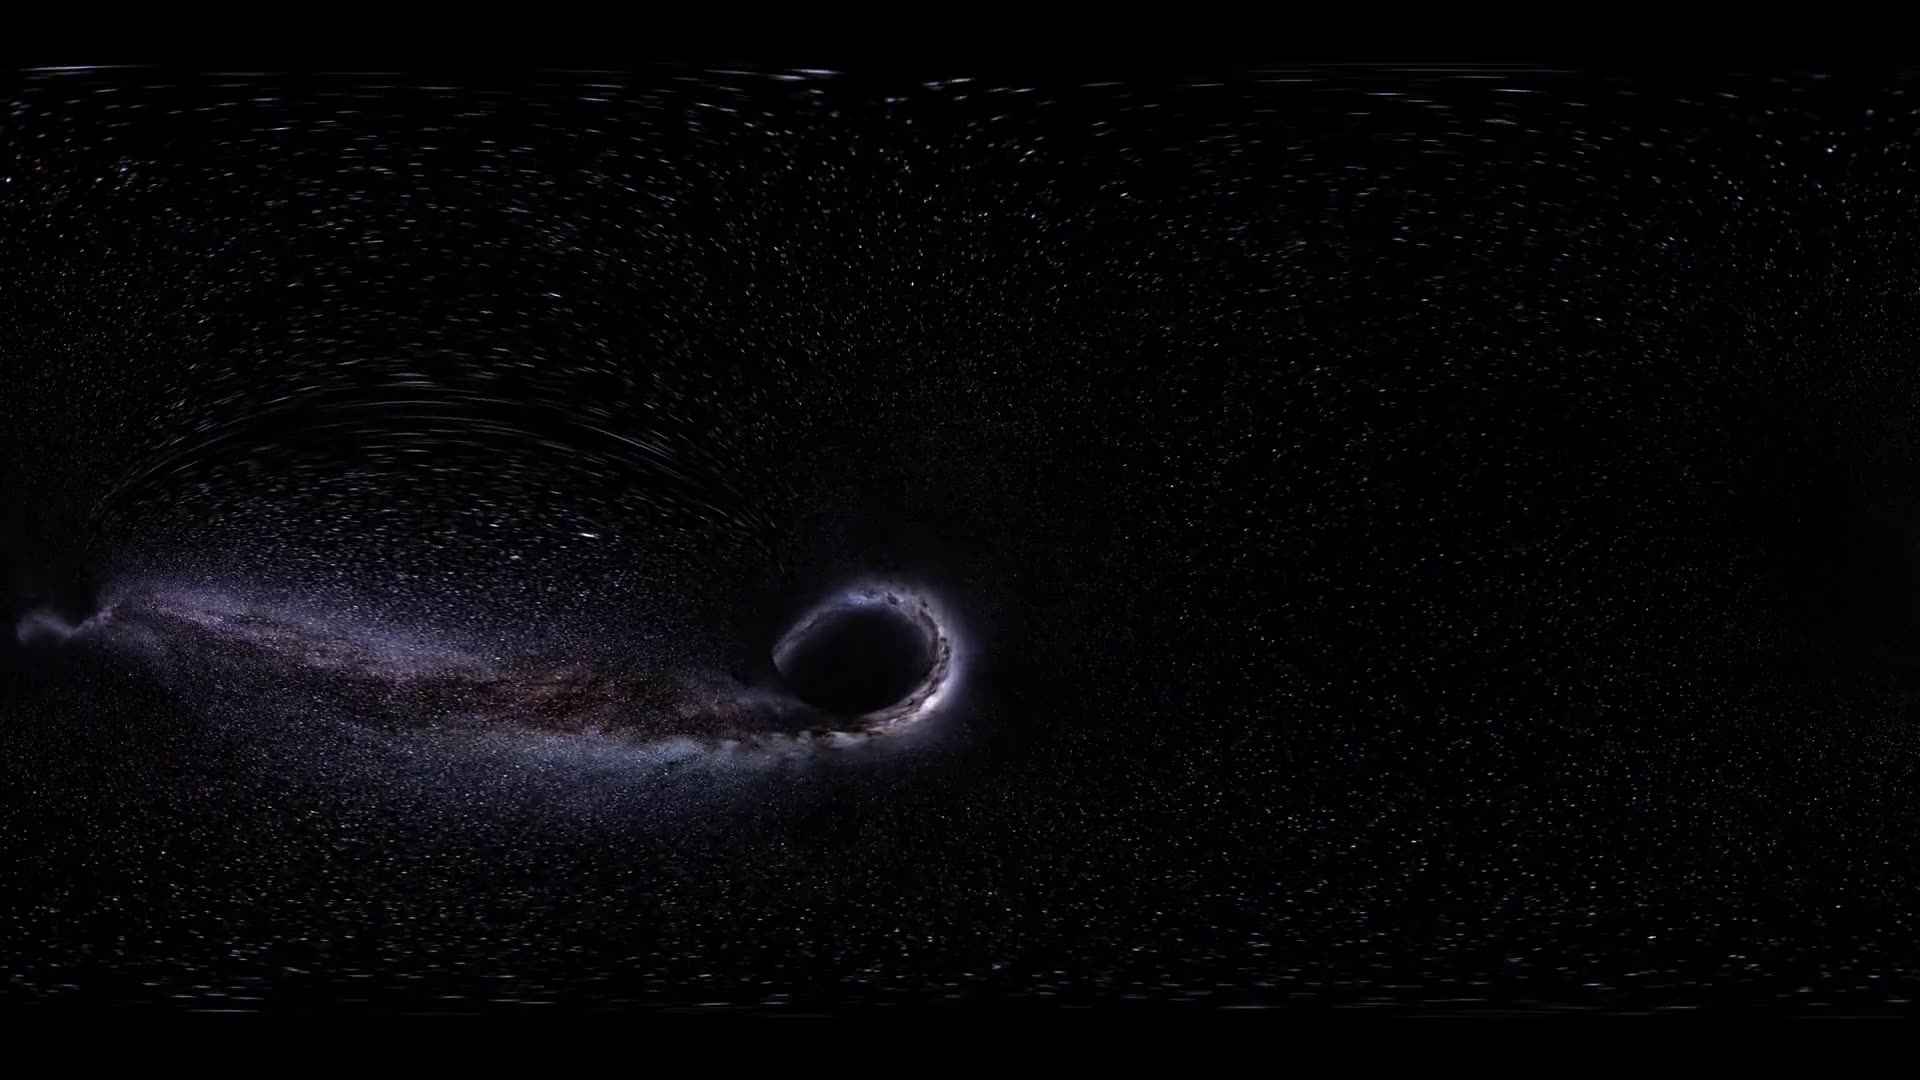 VR 360 Wormhole straight through time and space, clouds, and millions of stars. Warp straight ahead through this science fiction wormhole. virtual reality. Elements of this image furnished by NASA